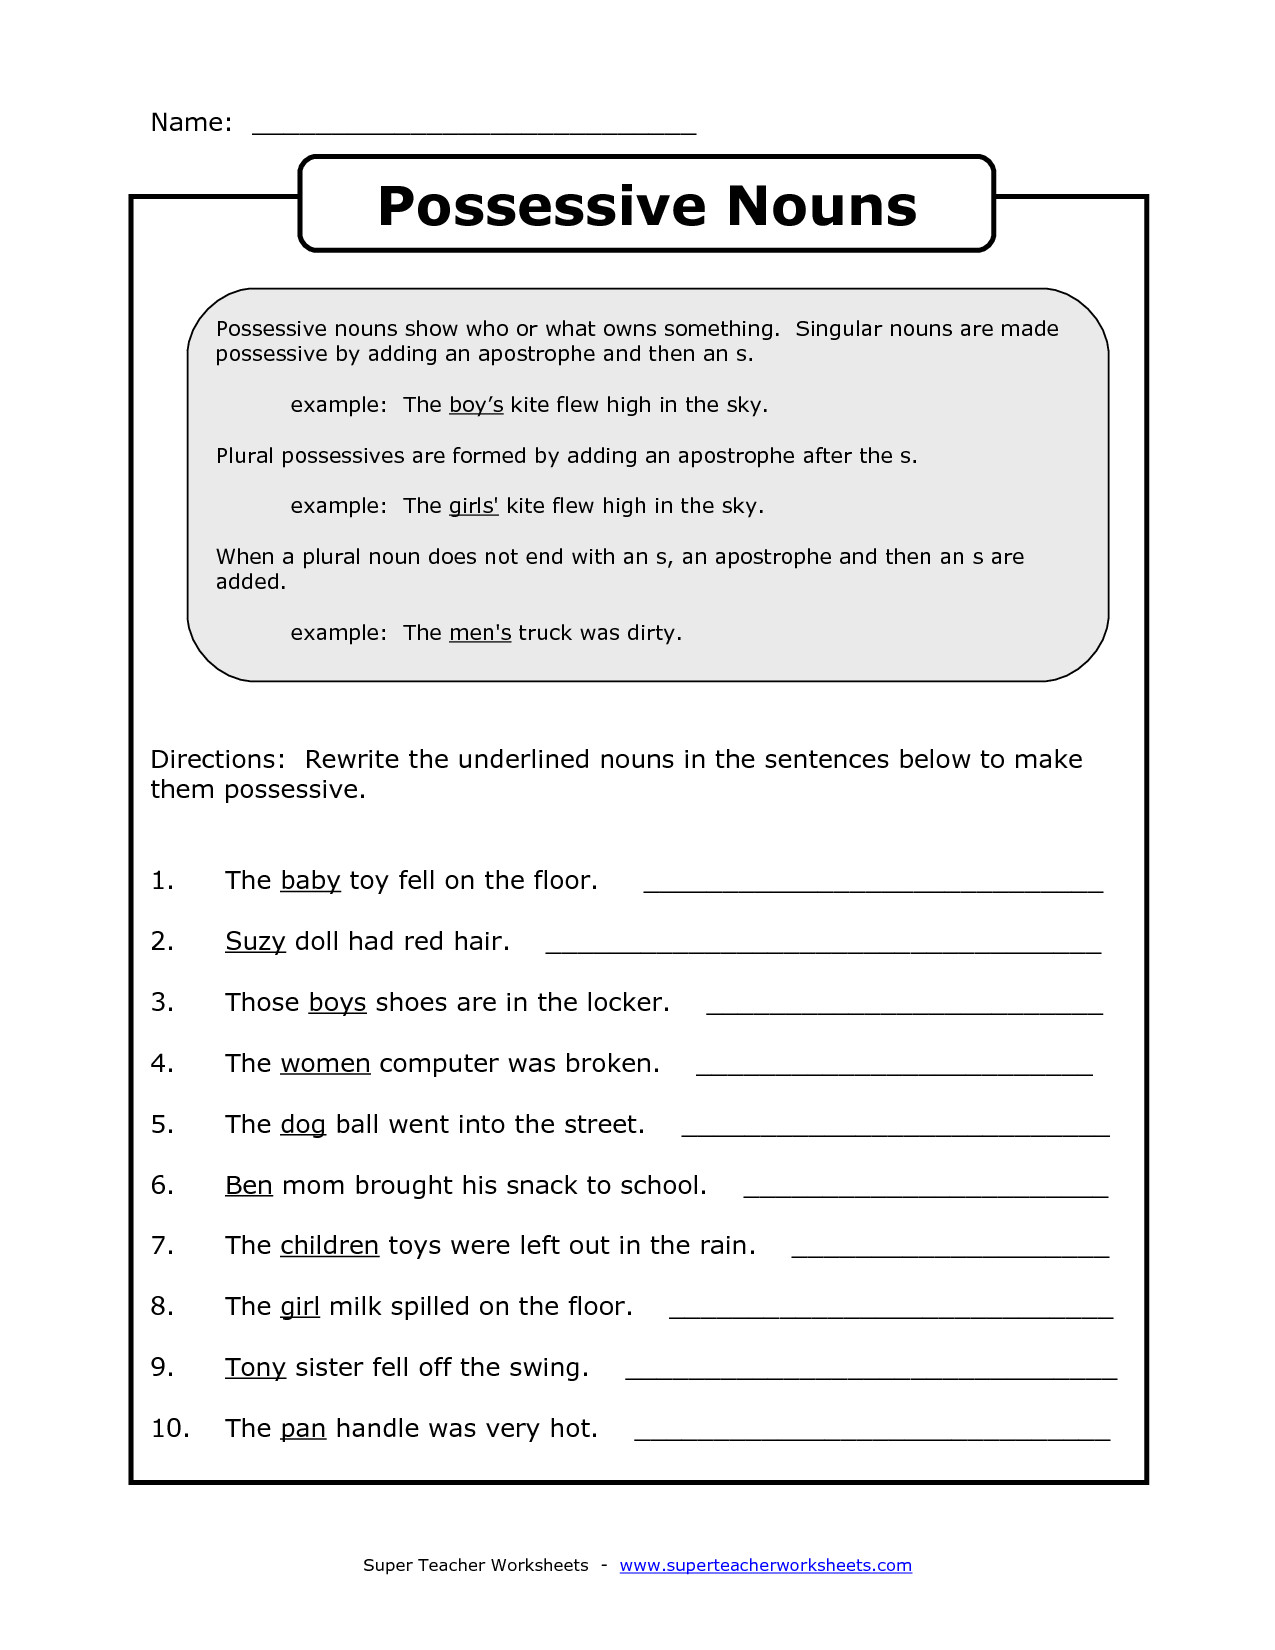 Possessive Nouns Worksheet 2nd Grade Possessive Nouns Worksheets Elementary